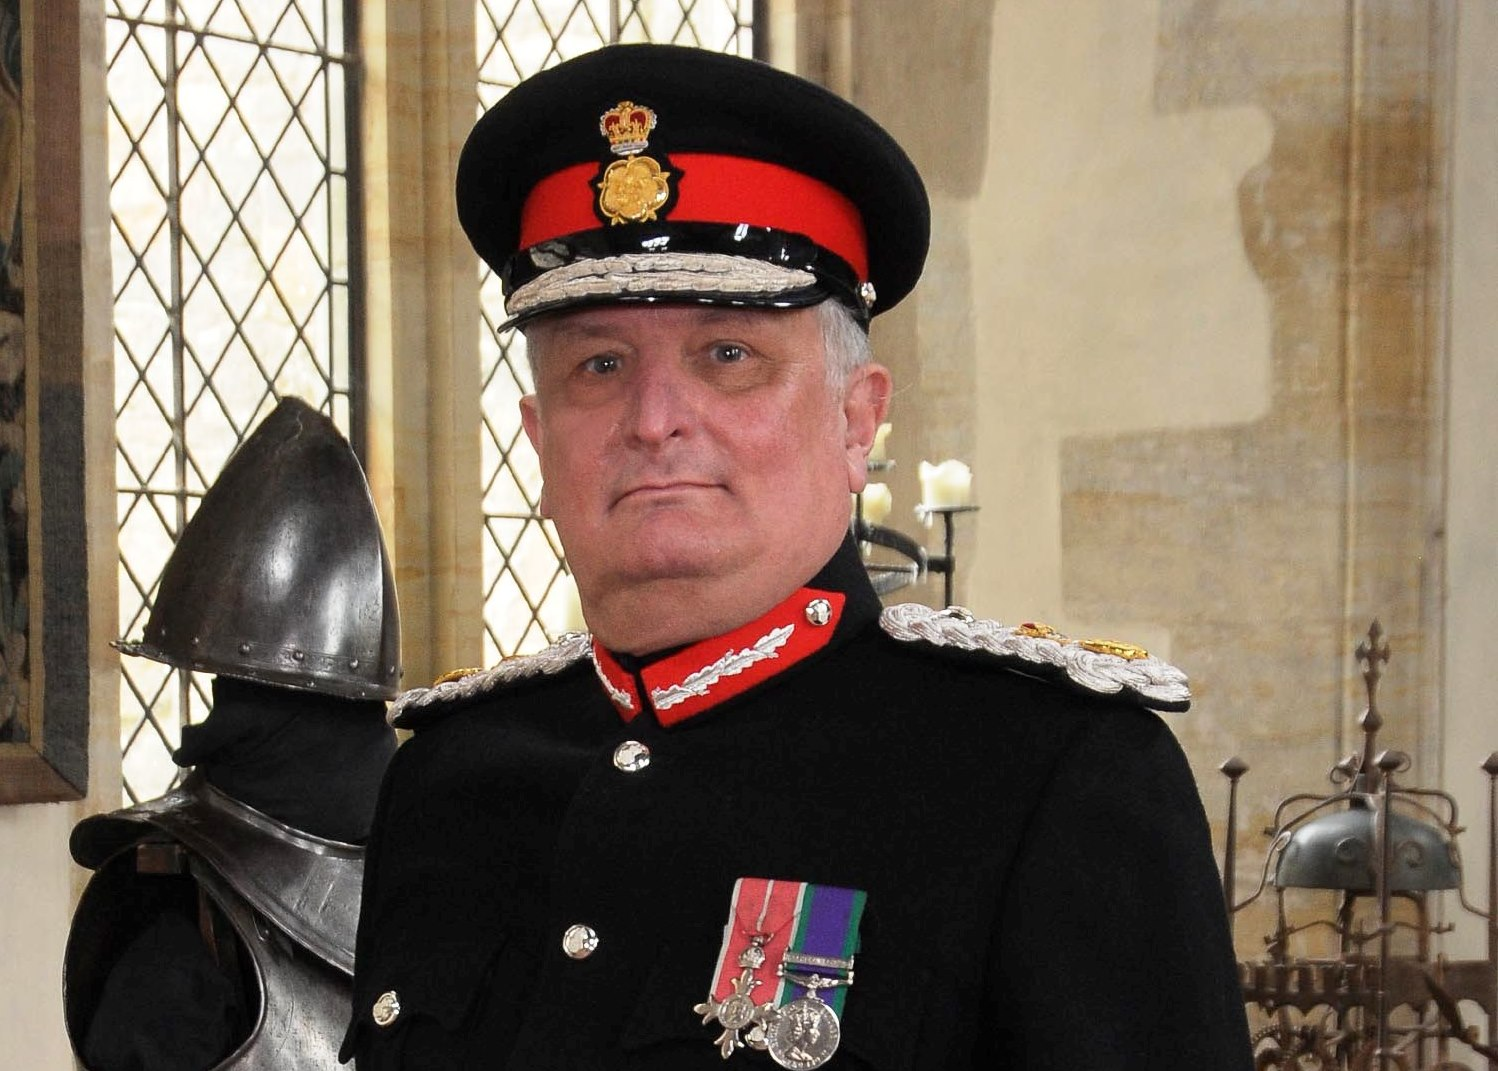 Lord-Lieutenant Calls on County to Celebrate Queen's Service to Nation